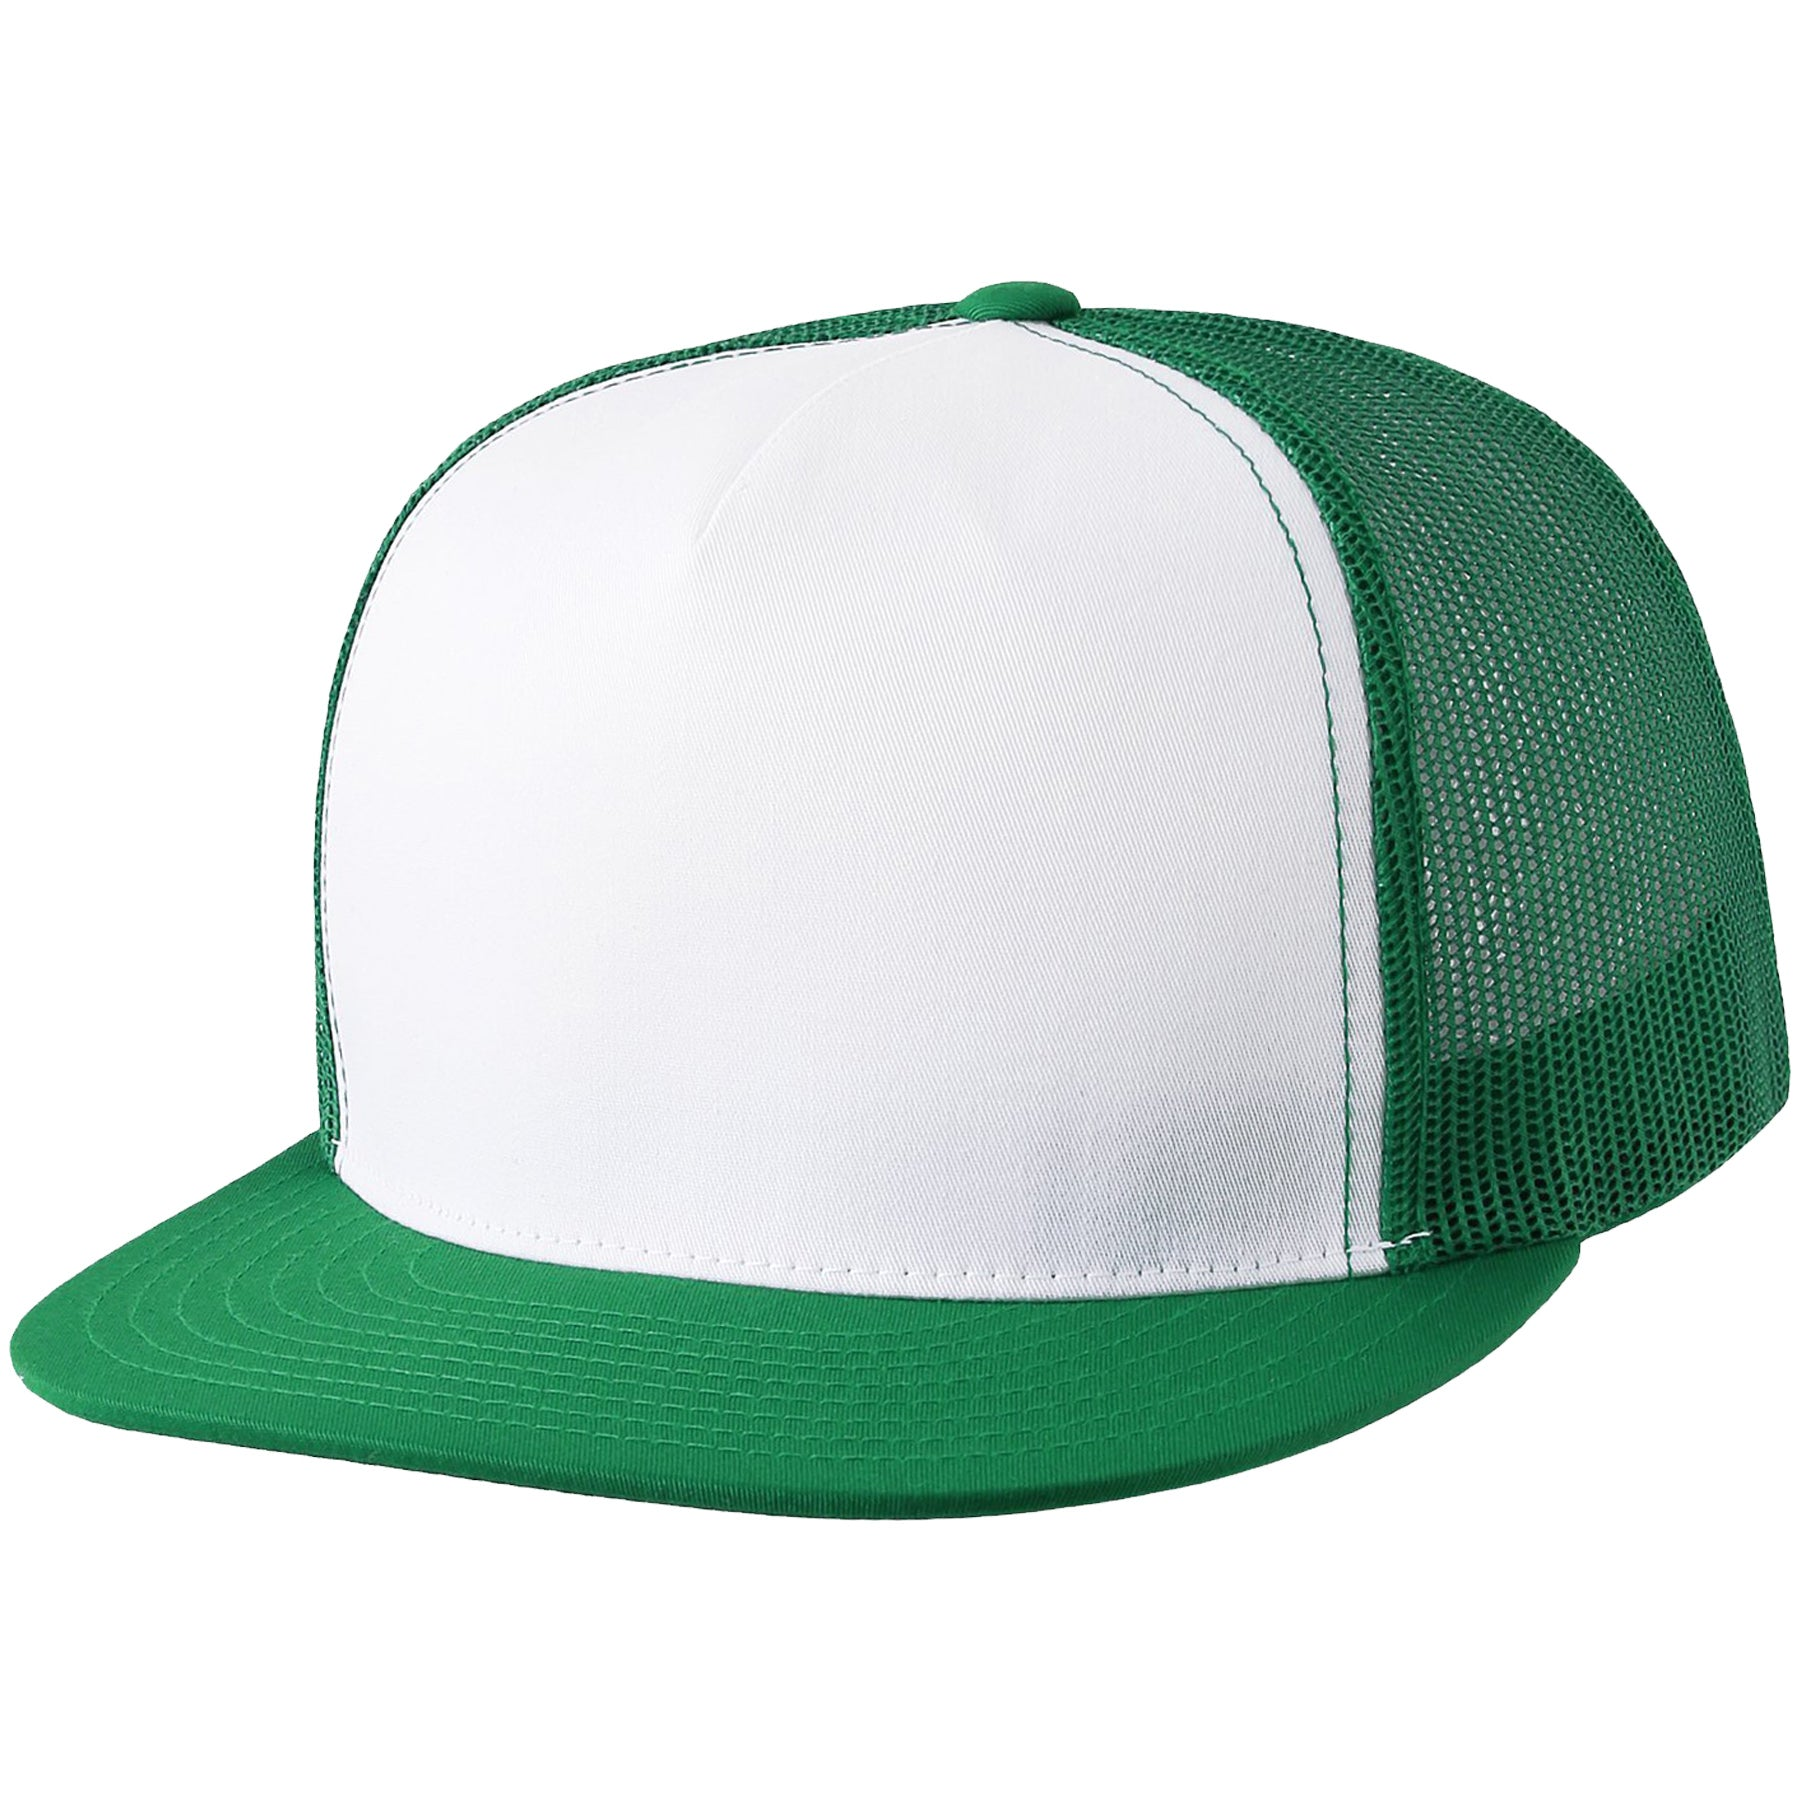 51c3e113b1eb4 ... caps cotton flat bill blank snapback green underbill fc4e6 f9291  discount  code for the white on green blank trucker hat has a white crown green brim